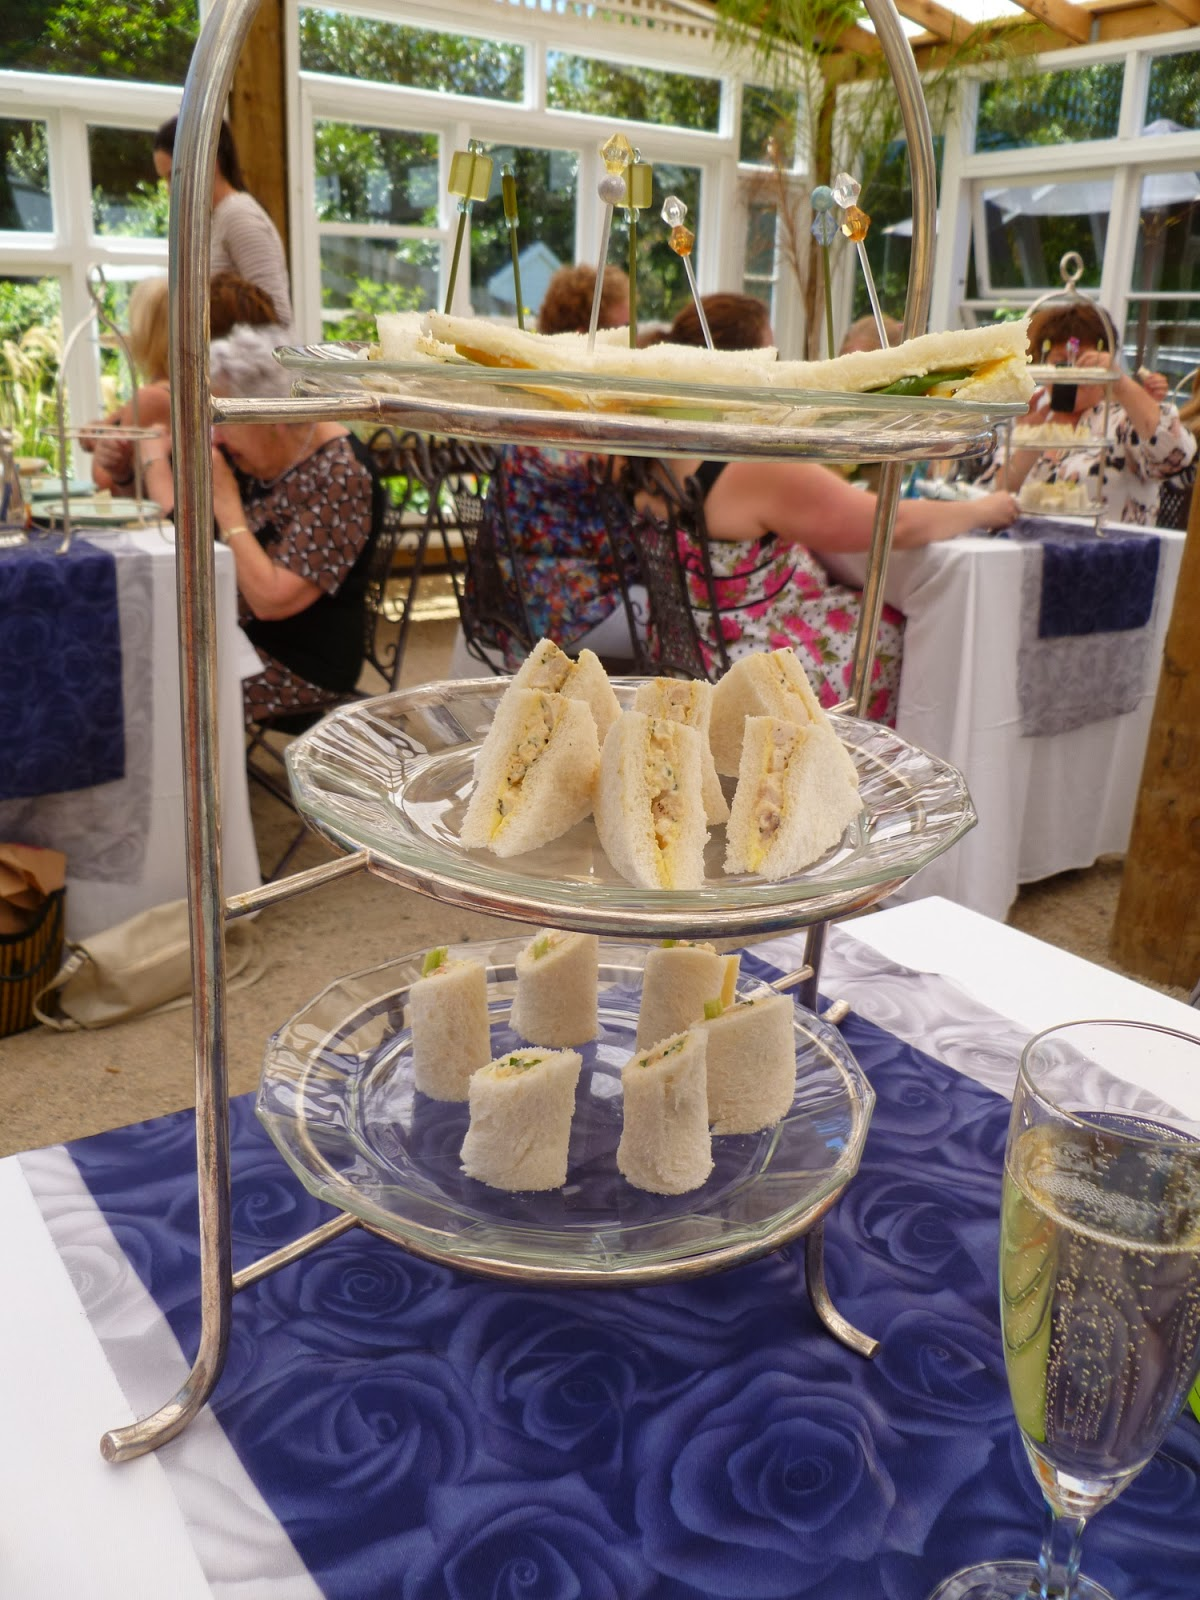 Tales from a caffeinated weka how to high tea with ruth for Club sandwich fillings for high tea